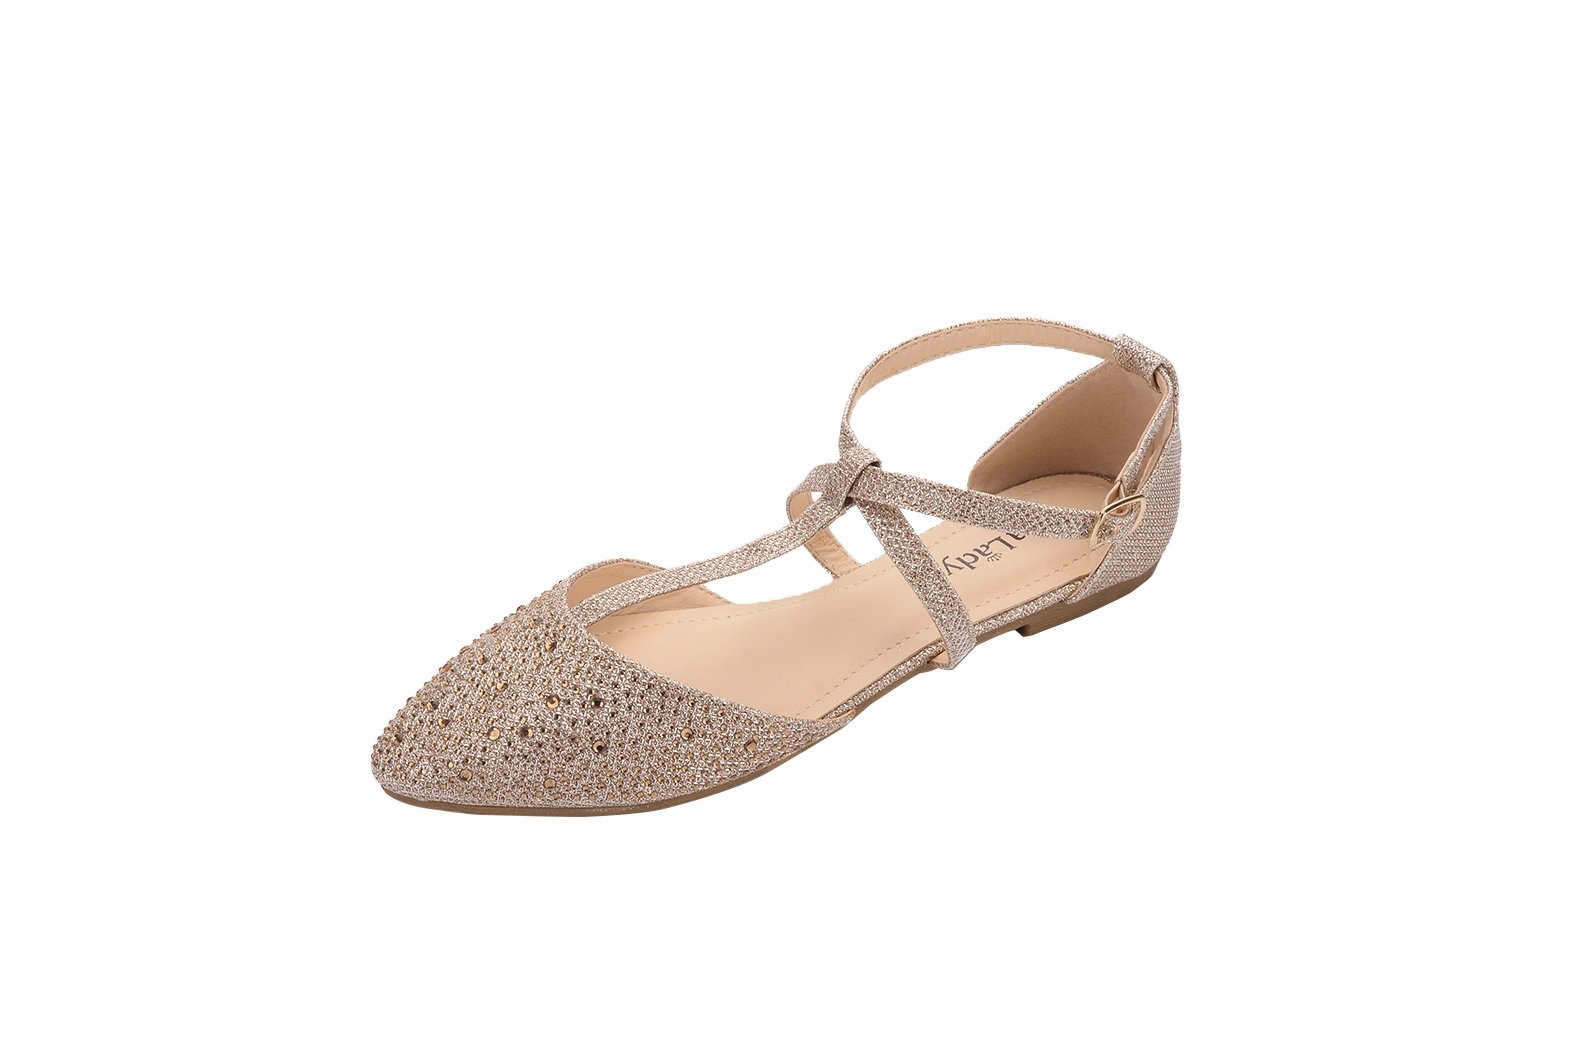 Mila Lady (Laurel Womens Pointed Toe Ankle Wrap T-Strap D'Orsay Flats,CHAMP9